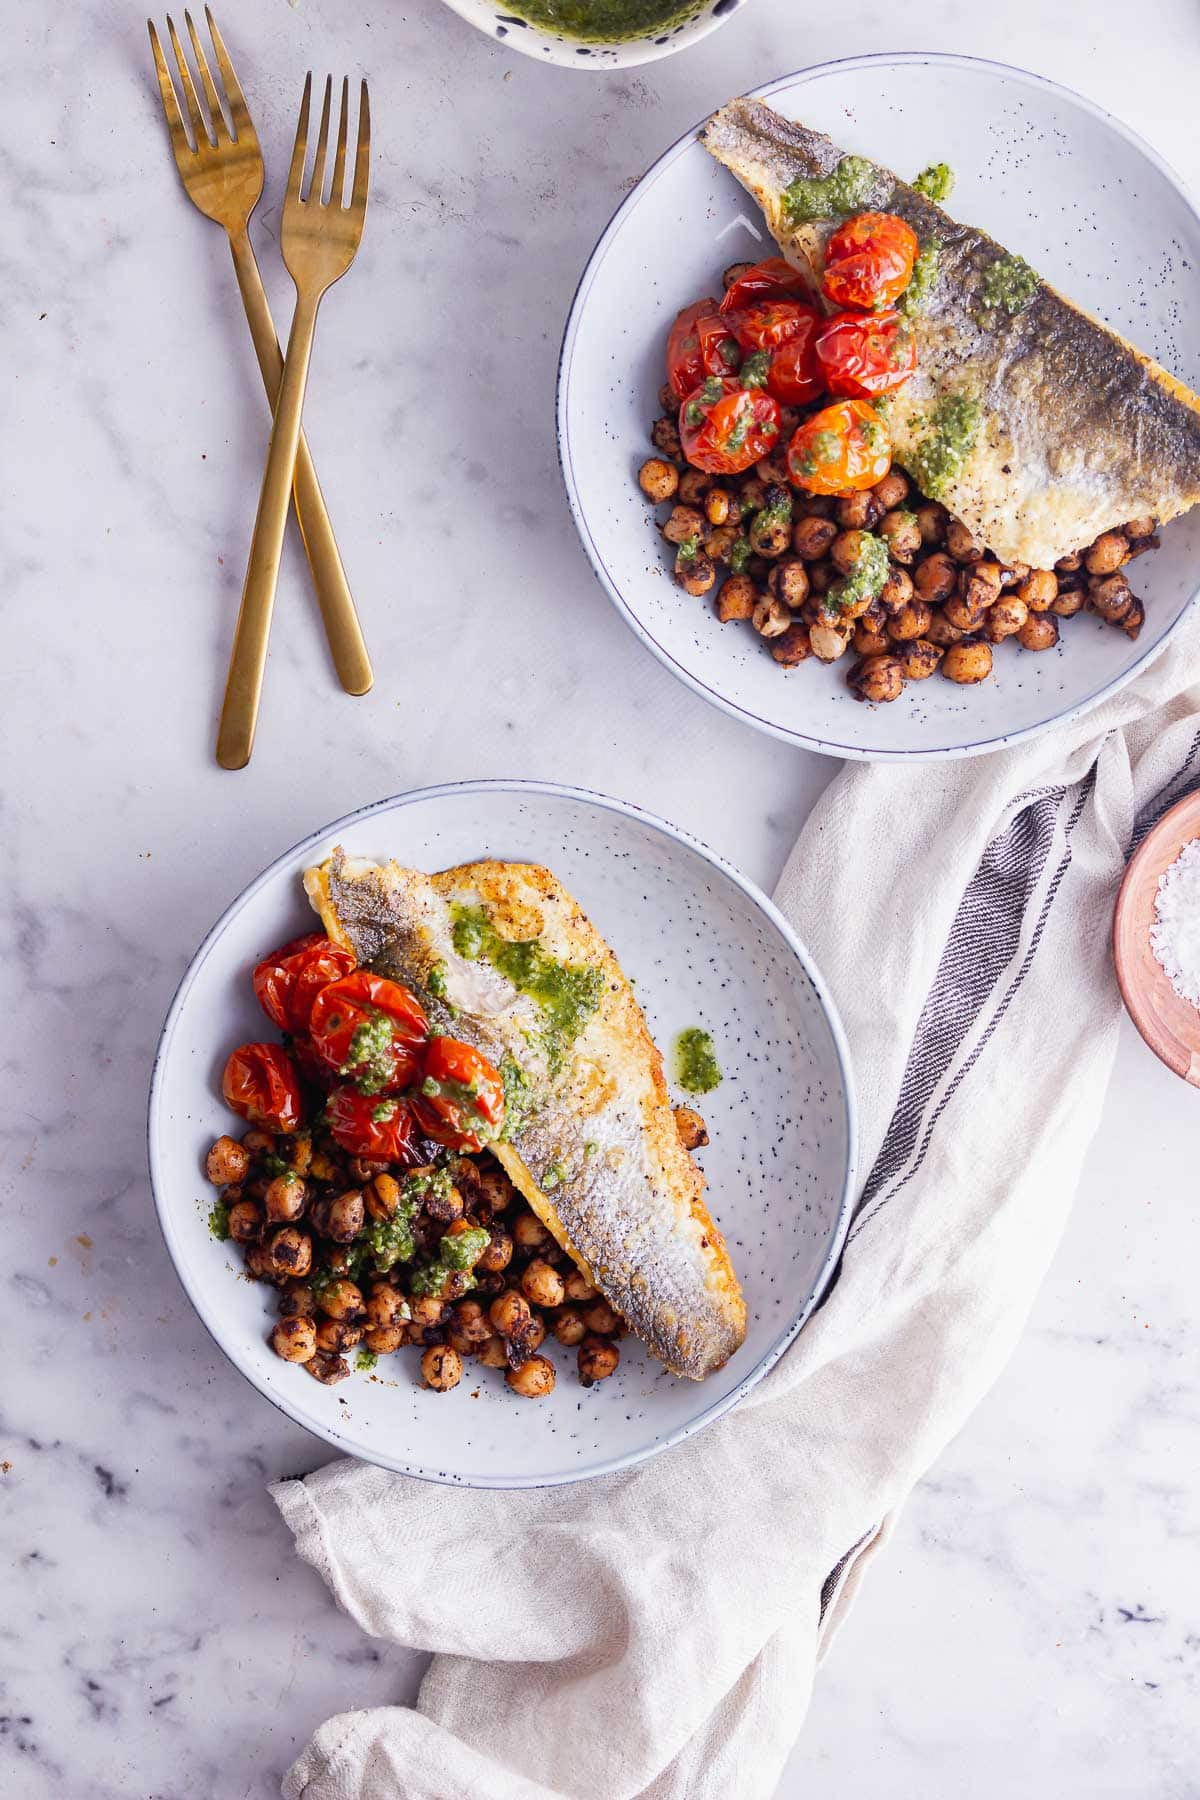 Flat lay shot of blue bowls of pan fried fish over chickpeas on a marble background